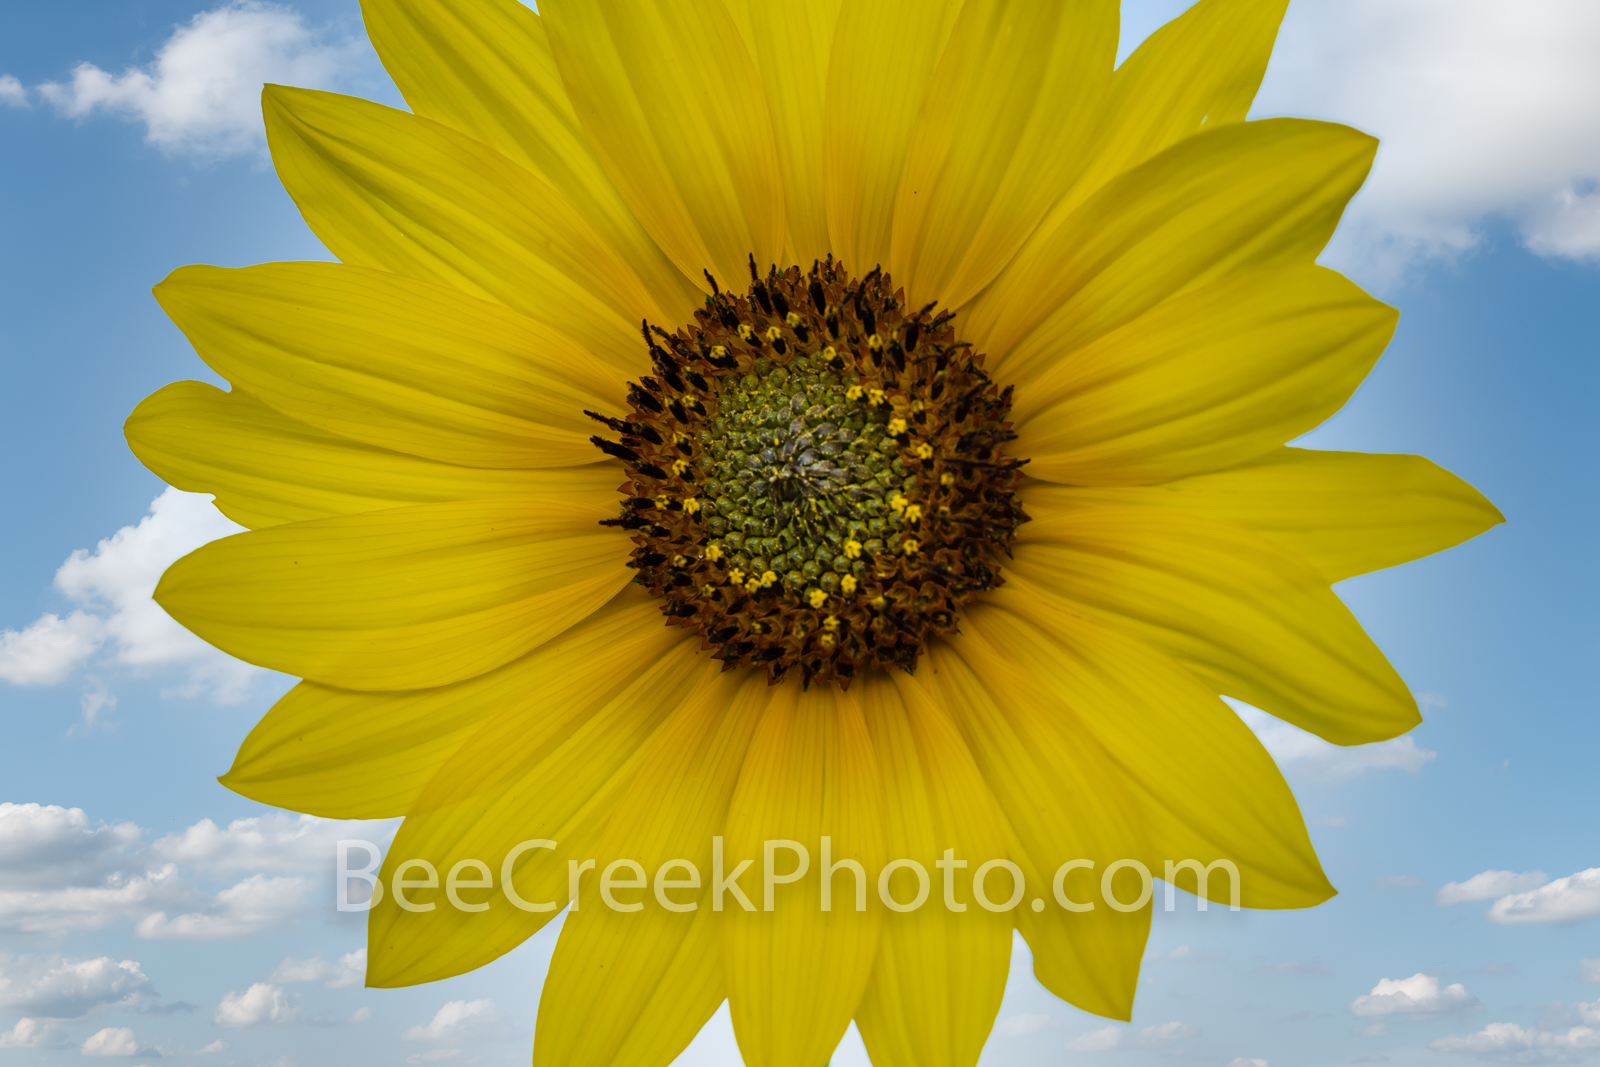 Texas Sunflower  - We captured this sunflower in a close up views where the details of the plant can be seen clearly.  We love...